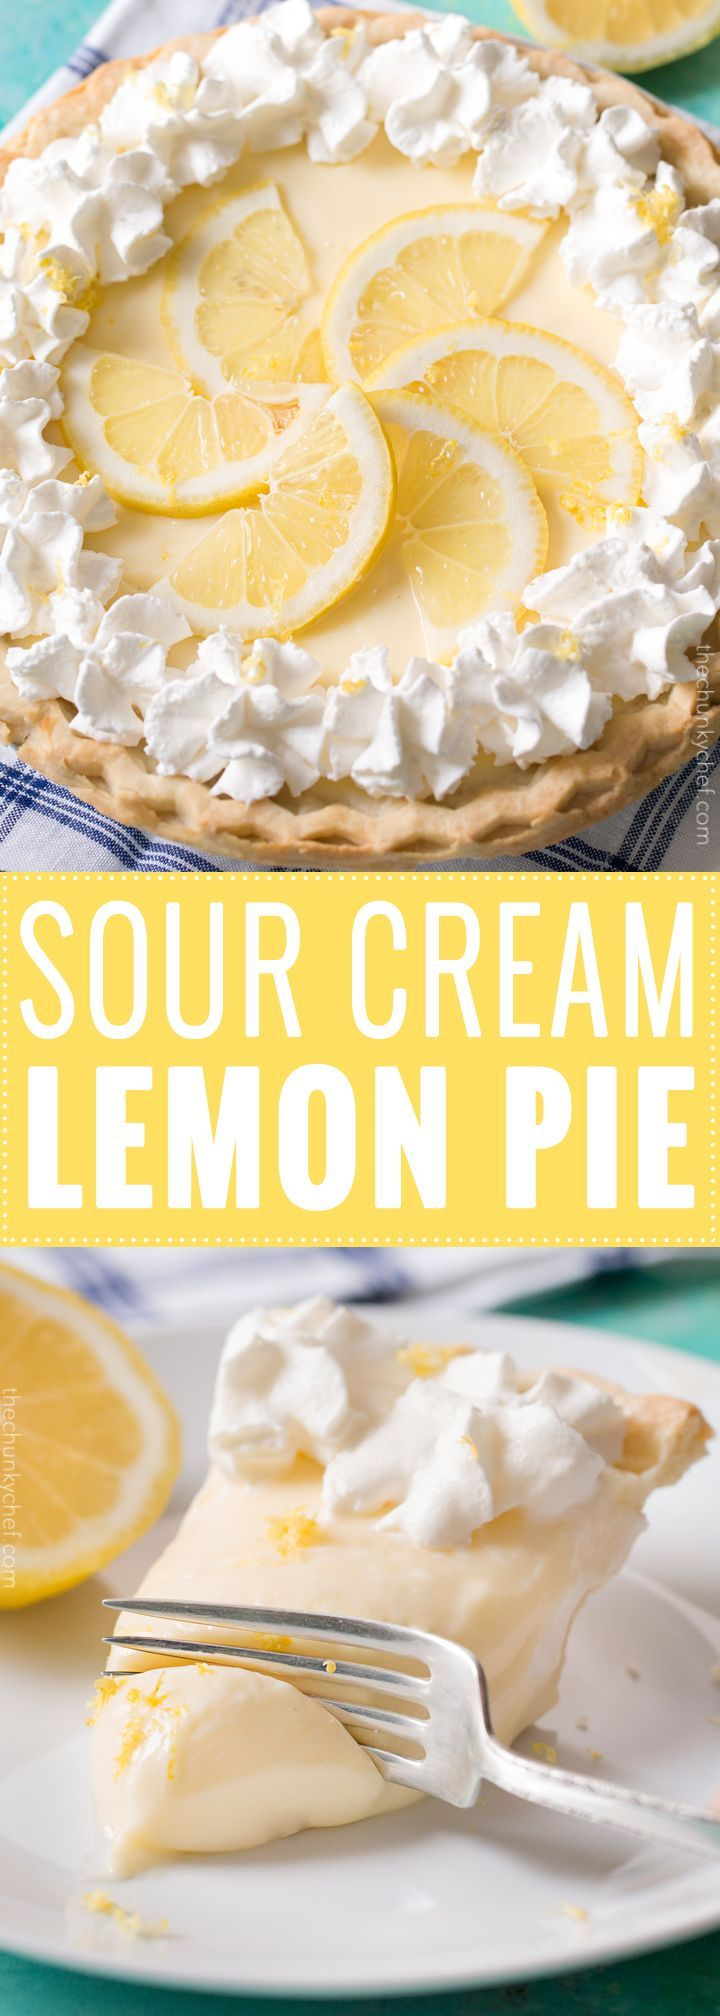 Creamy Sour Cream Lemon Pie | This almost no bake pie is cool, creamy, rich, and bursting with summer lemon flavors. The sour cream gives this dessert a delicious tang! | http://thechunkychef.com